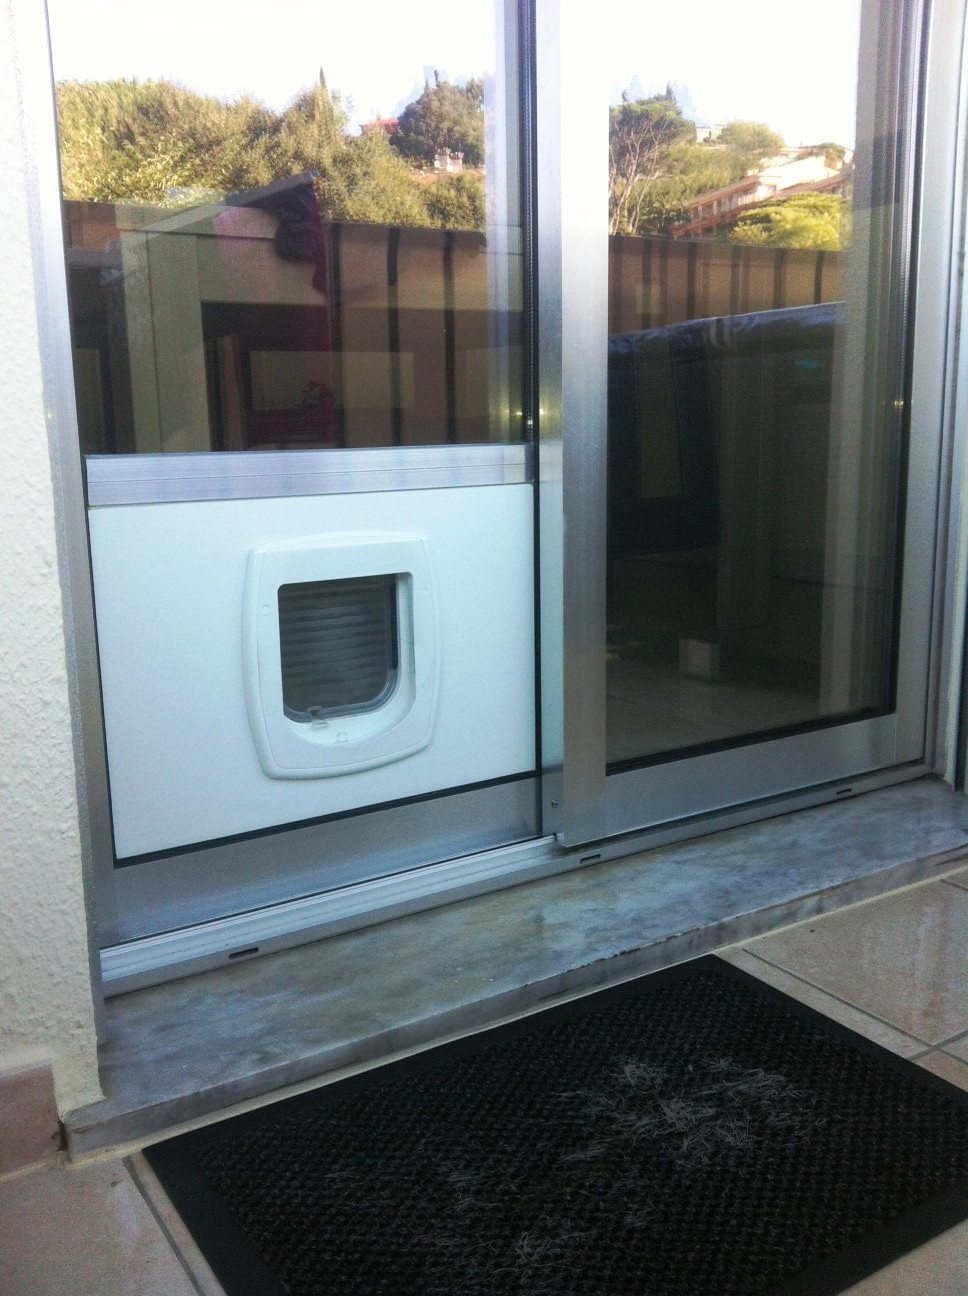 Baie vitre double vitrage baie vitree coulissante with for Installer chatiere porte garage